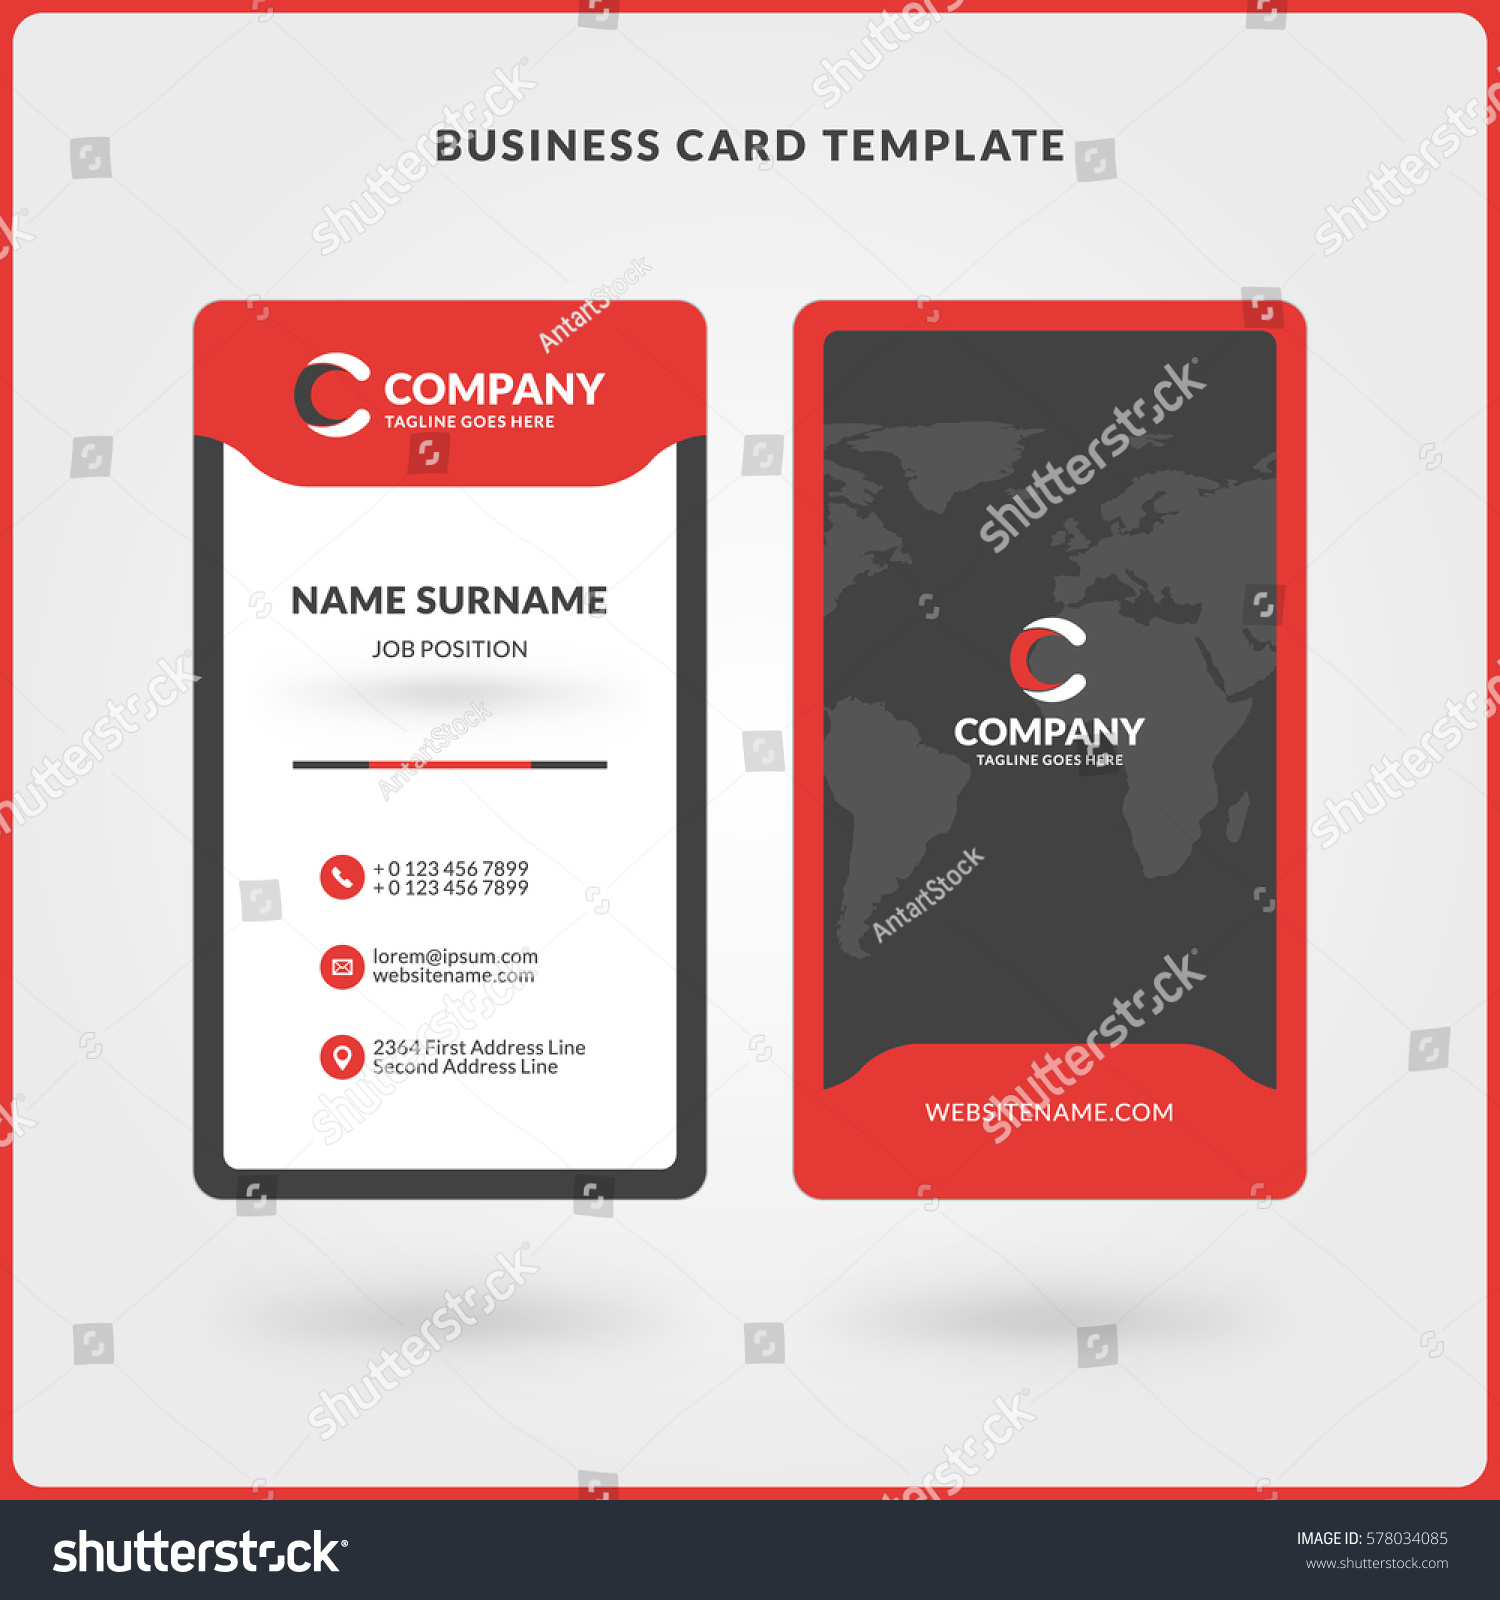 Vertical doublesided business card template red stock vector vertical doublesided business card template red stock vector 578034085 shutterstock wajeb Choice Image